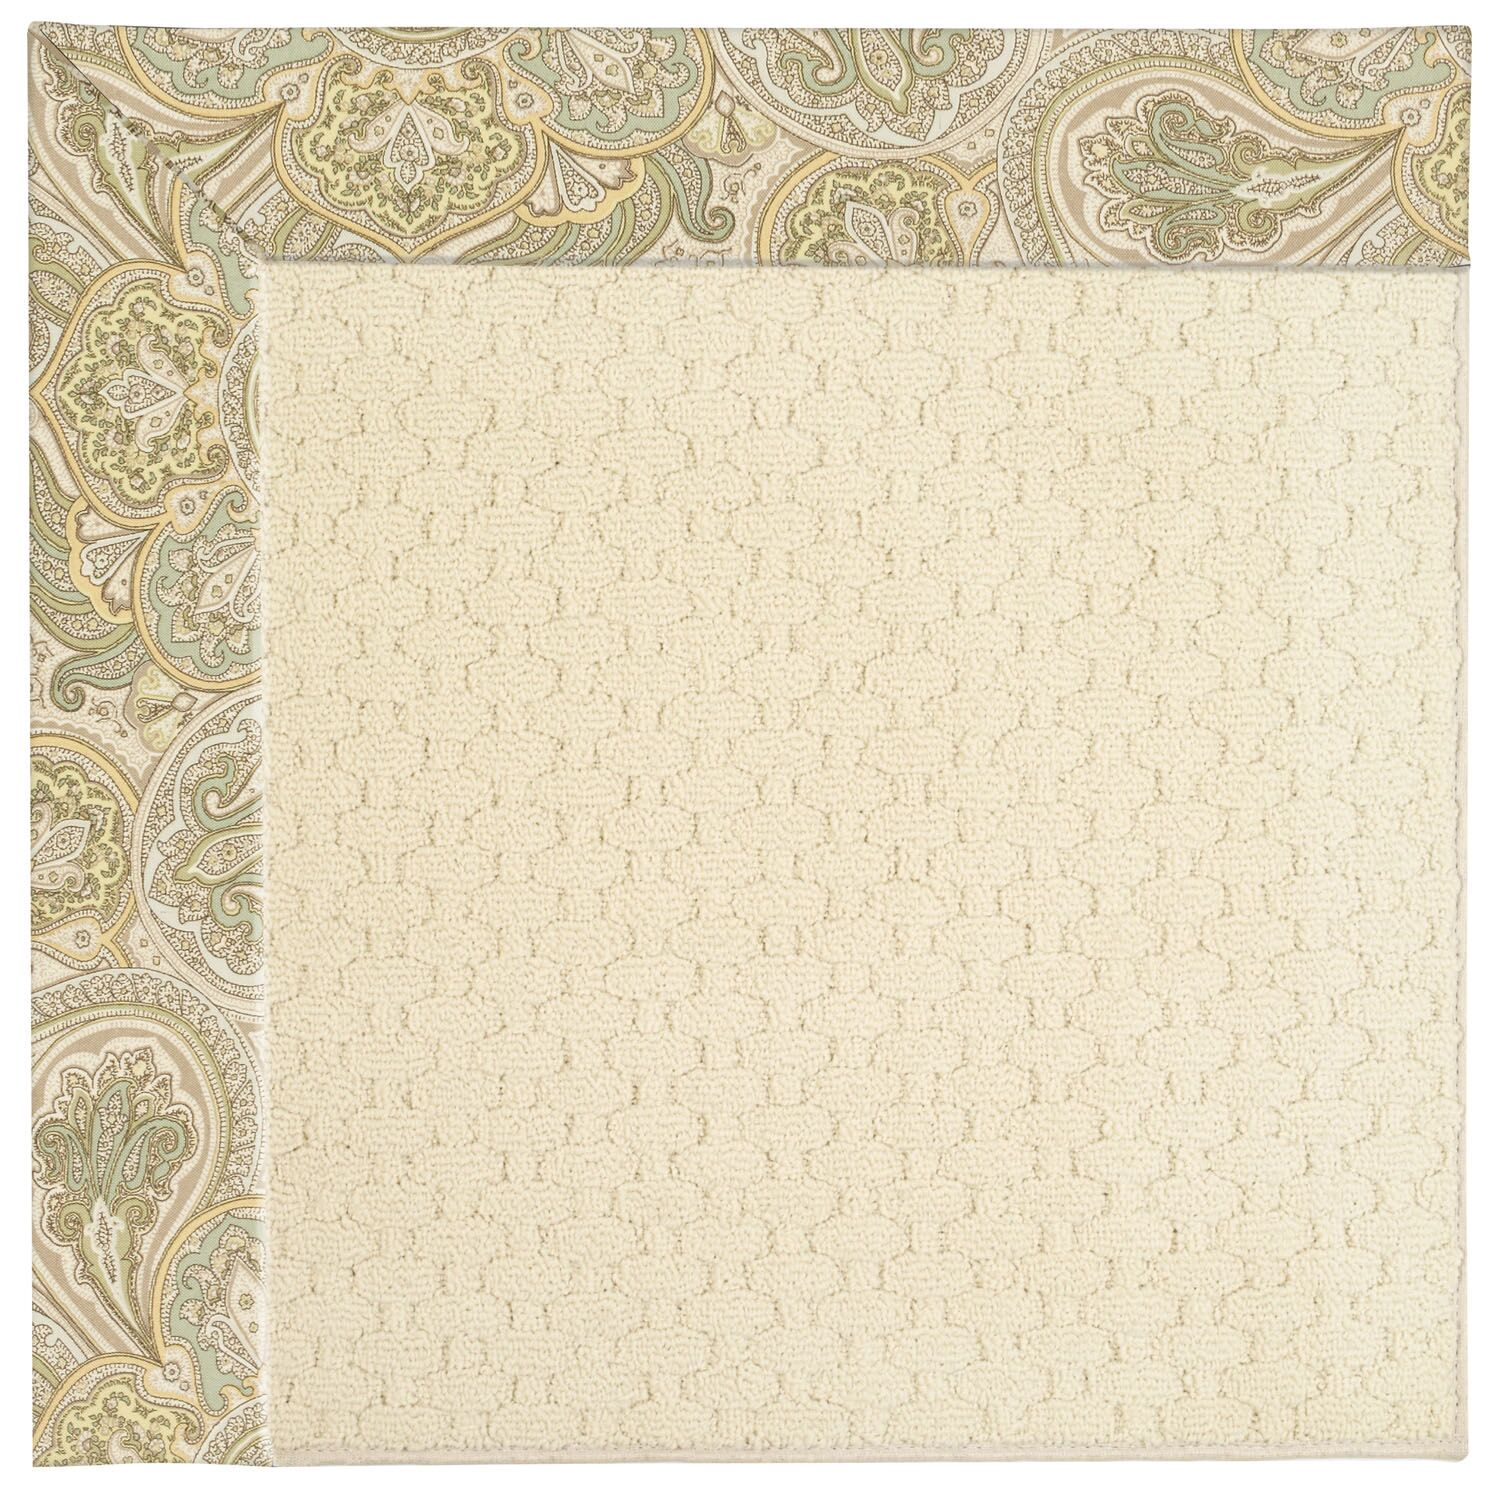 Lisle Light Beige Indoor/Outdoor Area Rug Rug Size: Rectangle 3' x 5'